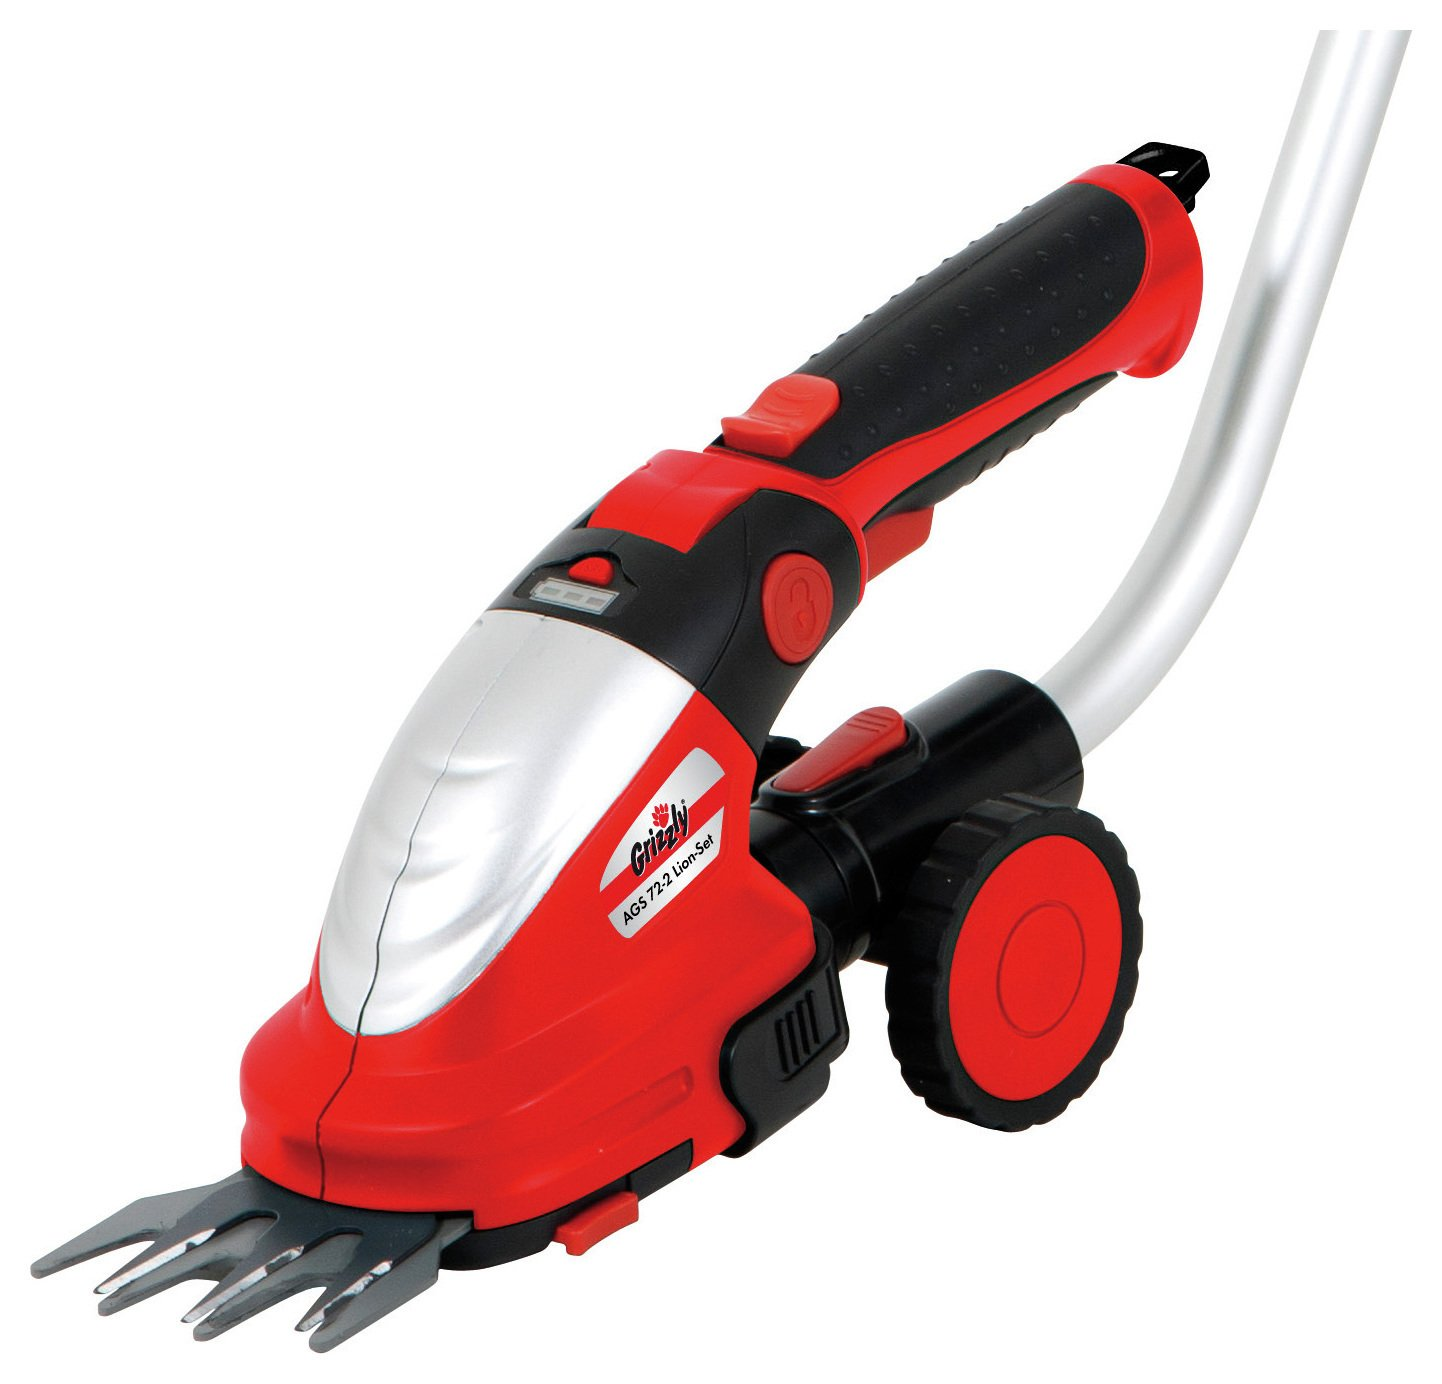 Image of Grizzly Tools Grass and Shrub Trimmer with 1.3Ah Battery